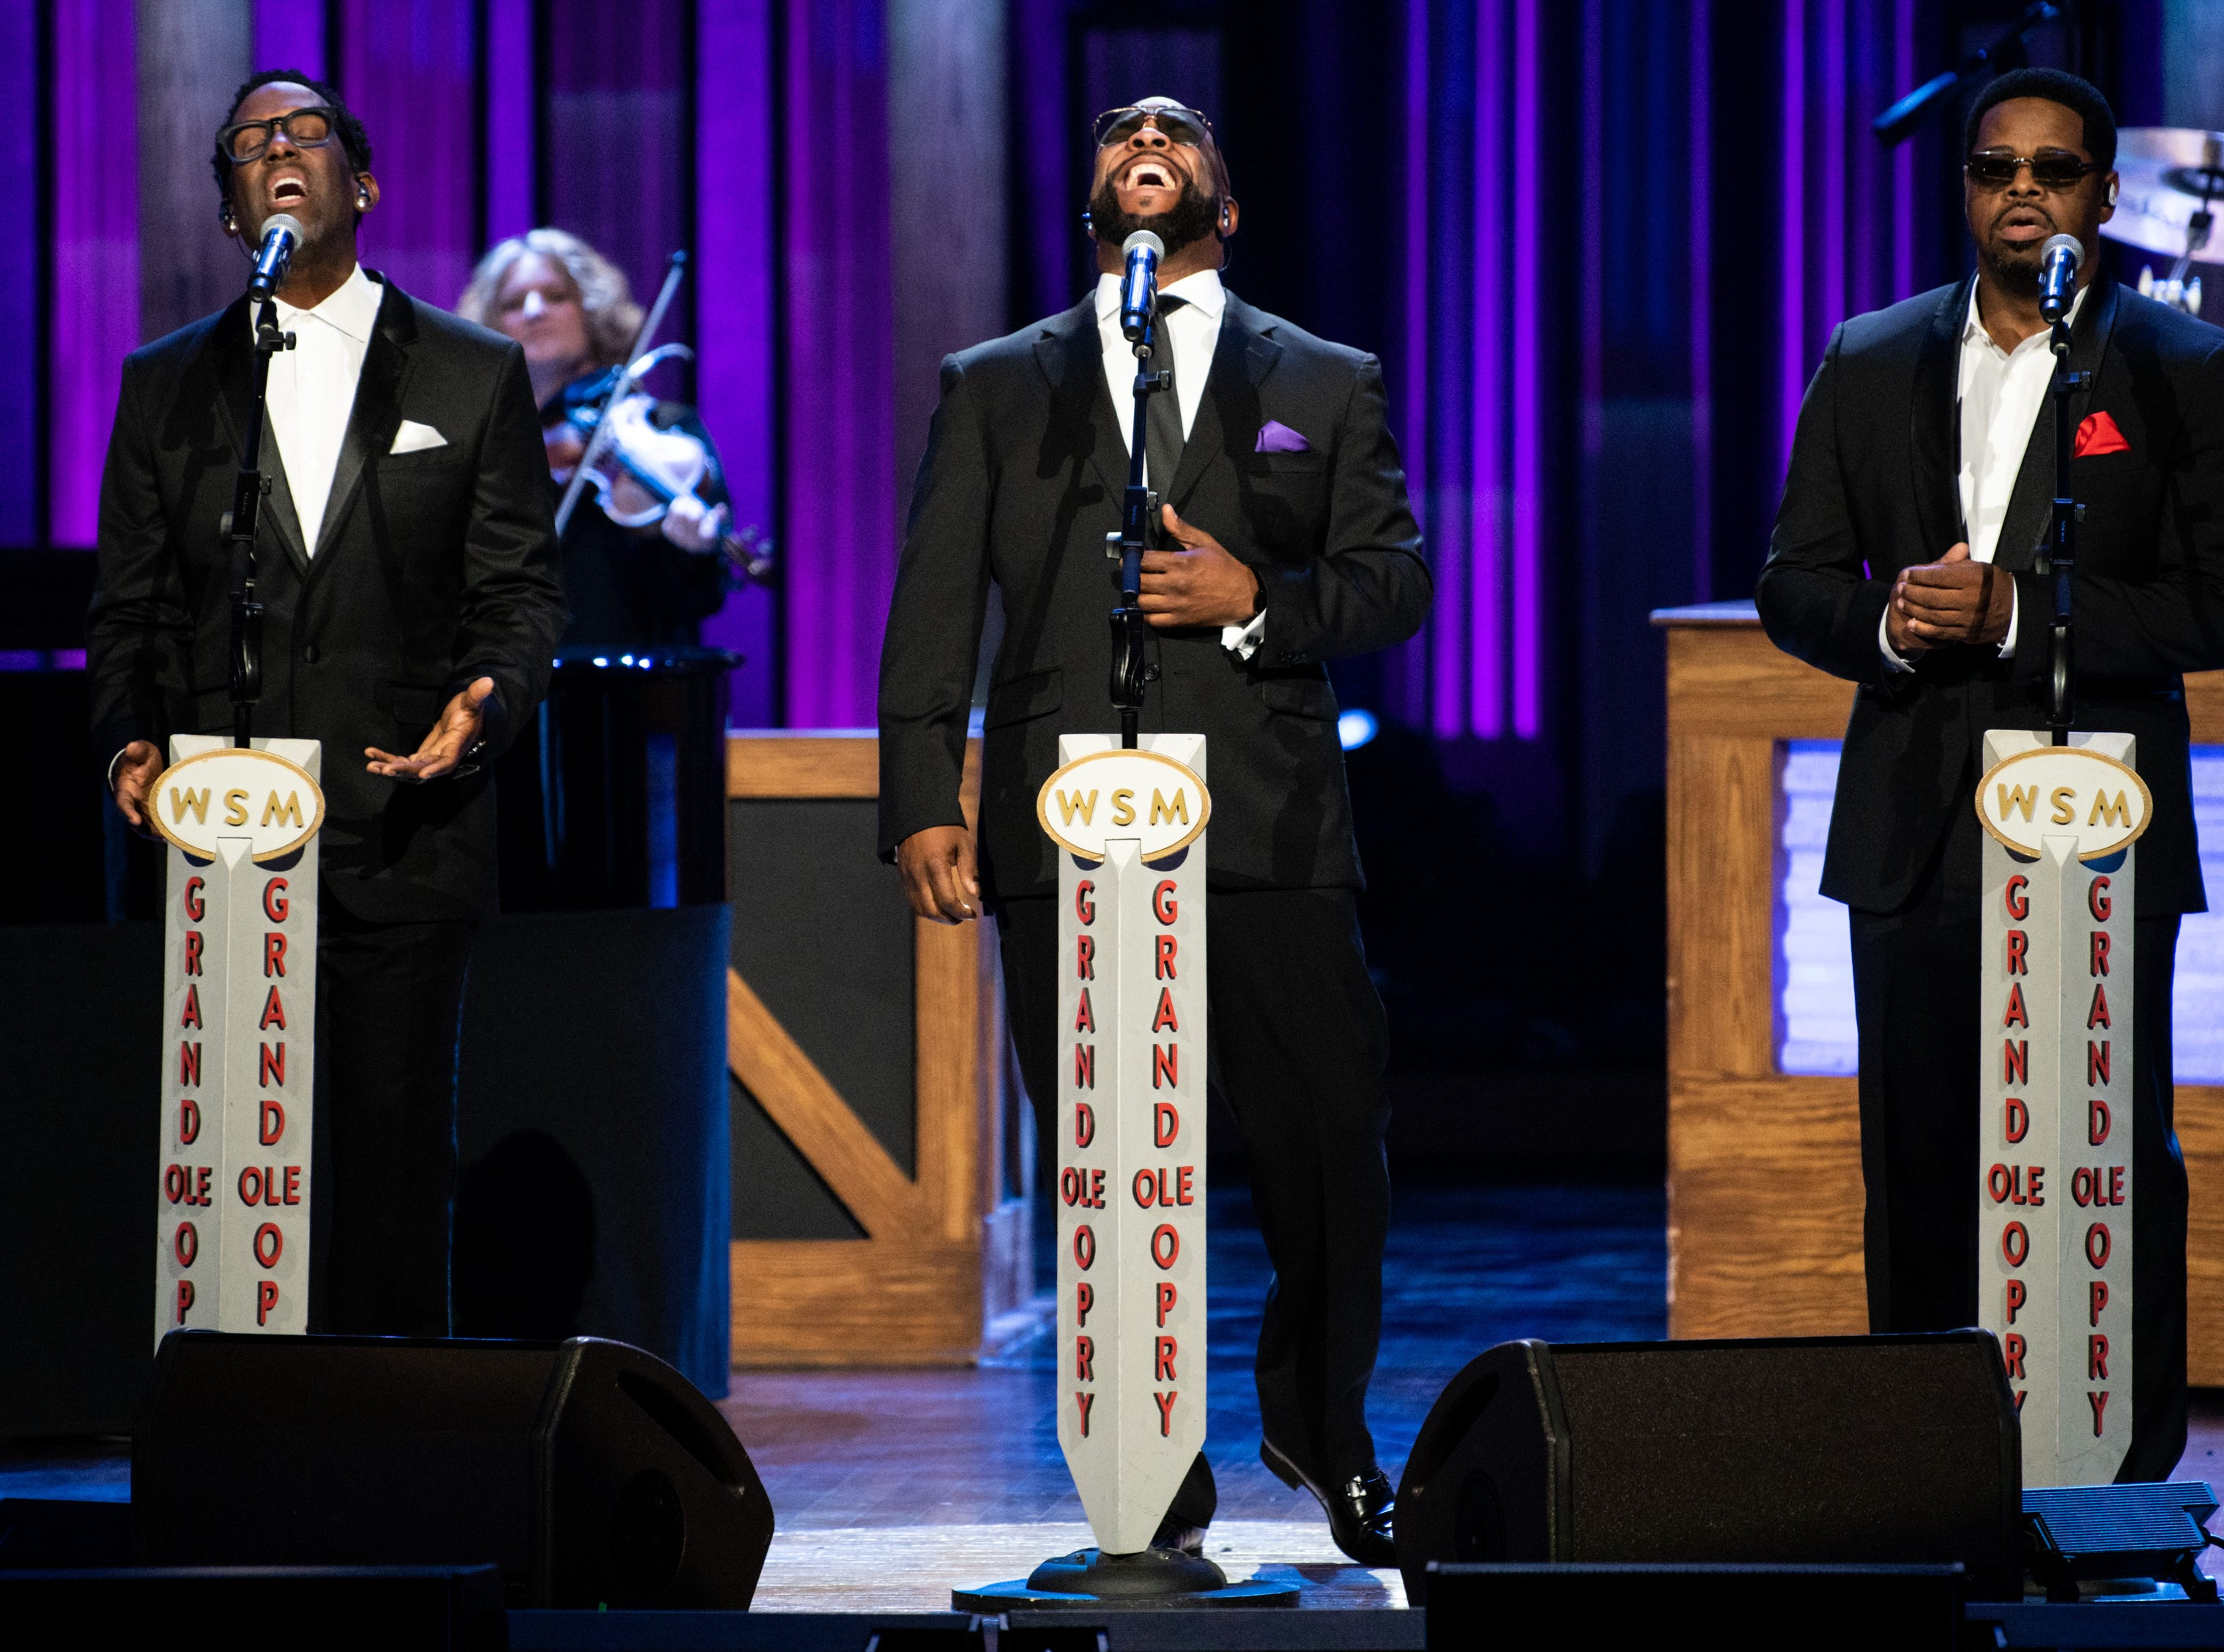 Boyz II Men performs during the An Opry Salute to Ray Charles concert at The Grand Ole Opry in Nashville, Tenn., Monday, Oct. 8, 2018.